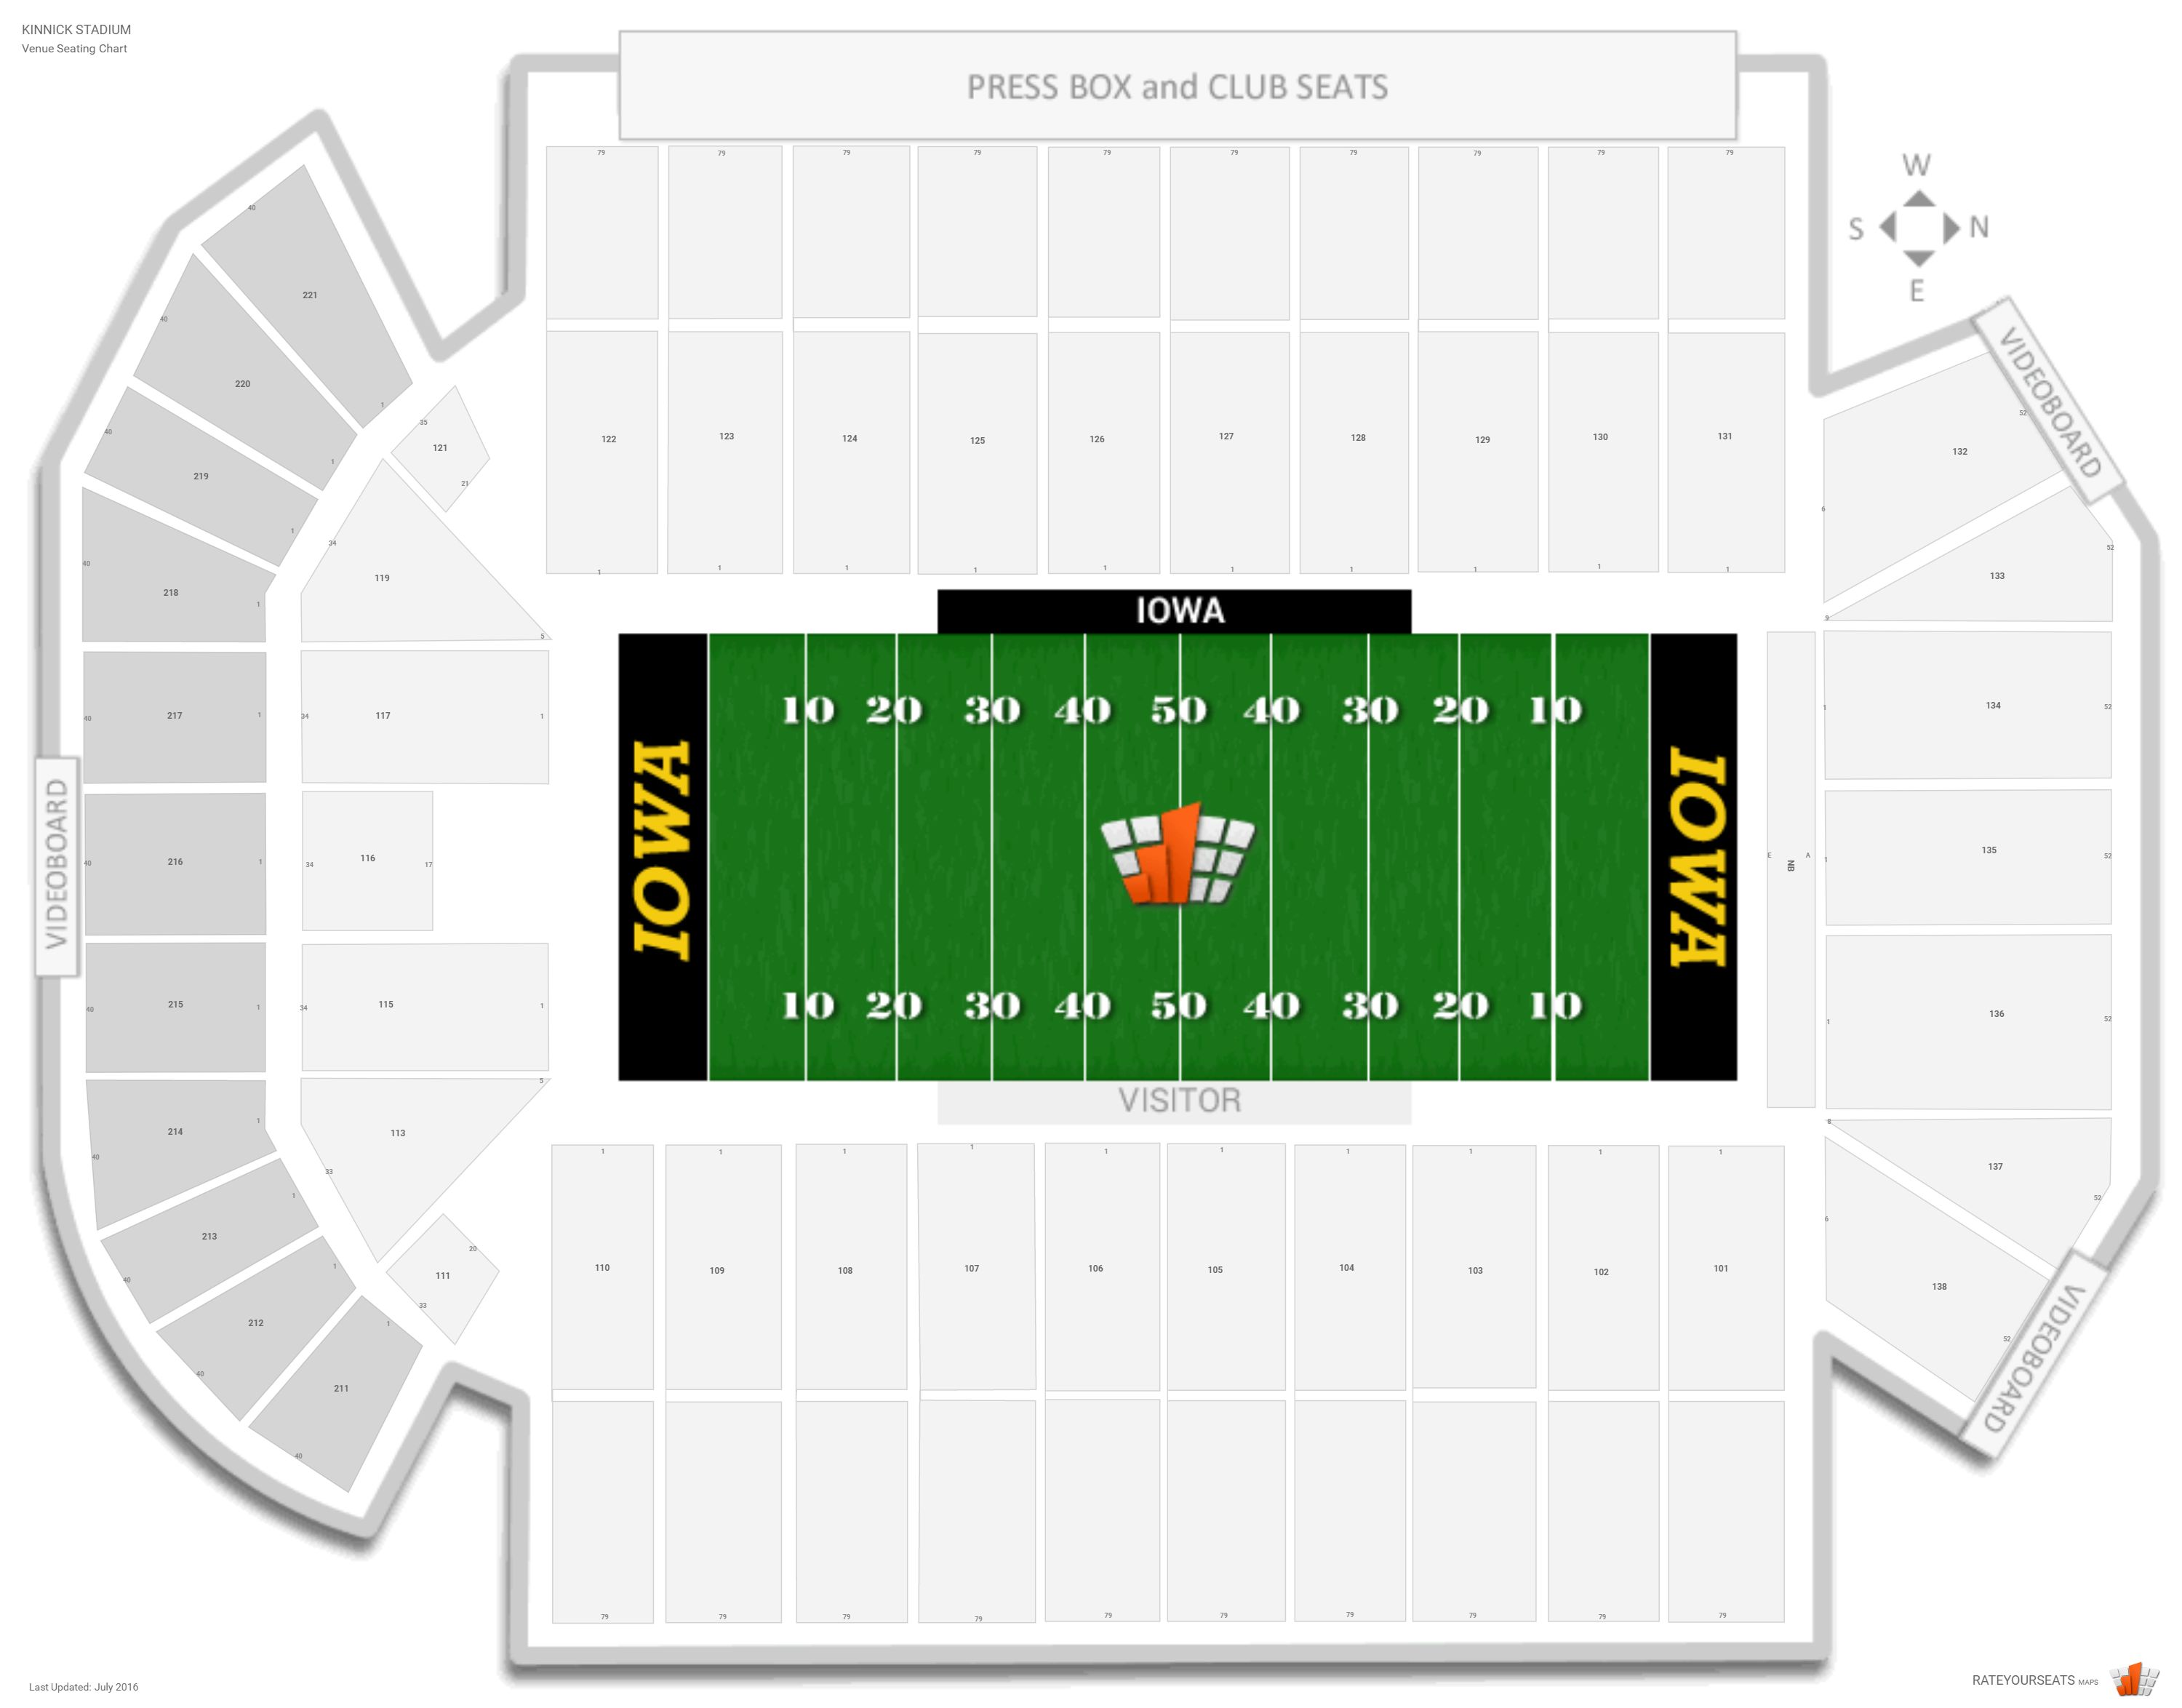 Kinnick Stadium Seating Chart with Row Numbers